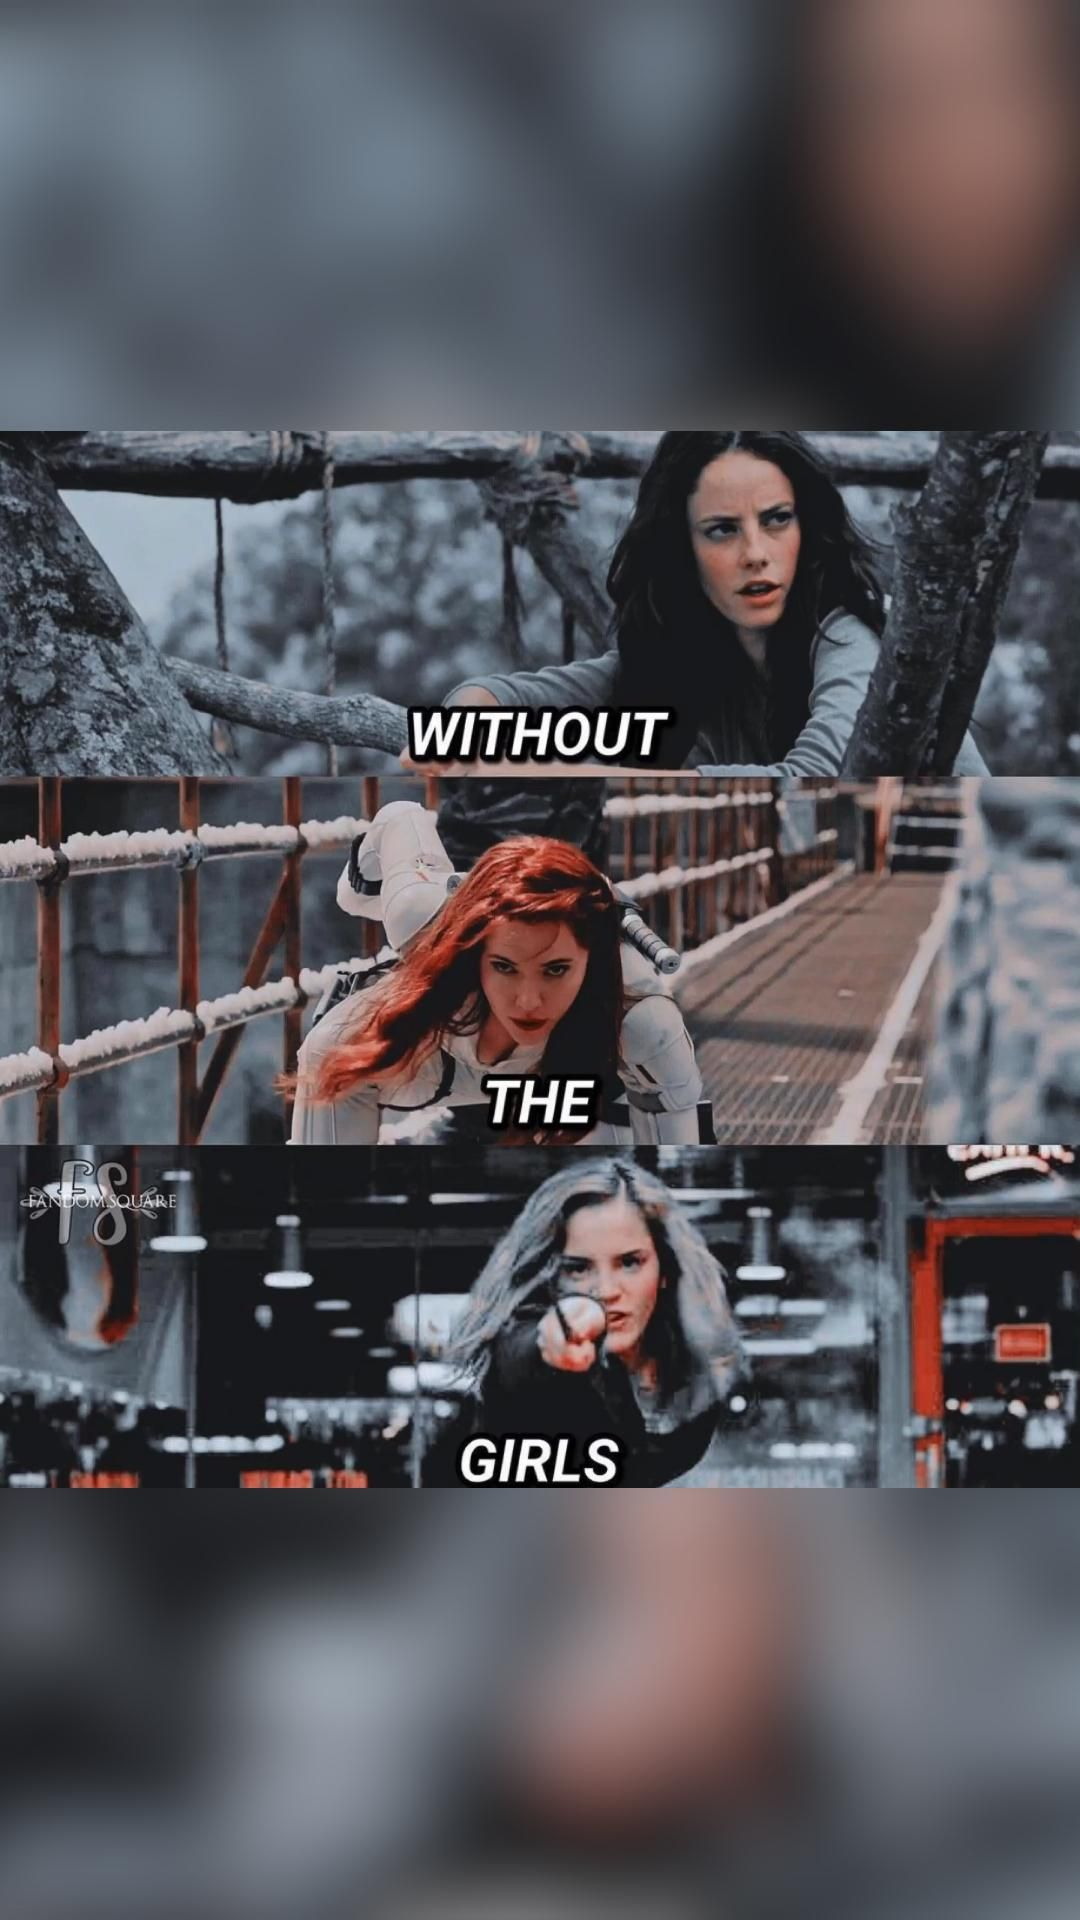 without the girls the boys would've died in the first movie